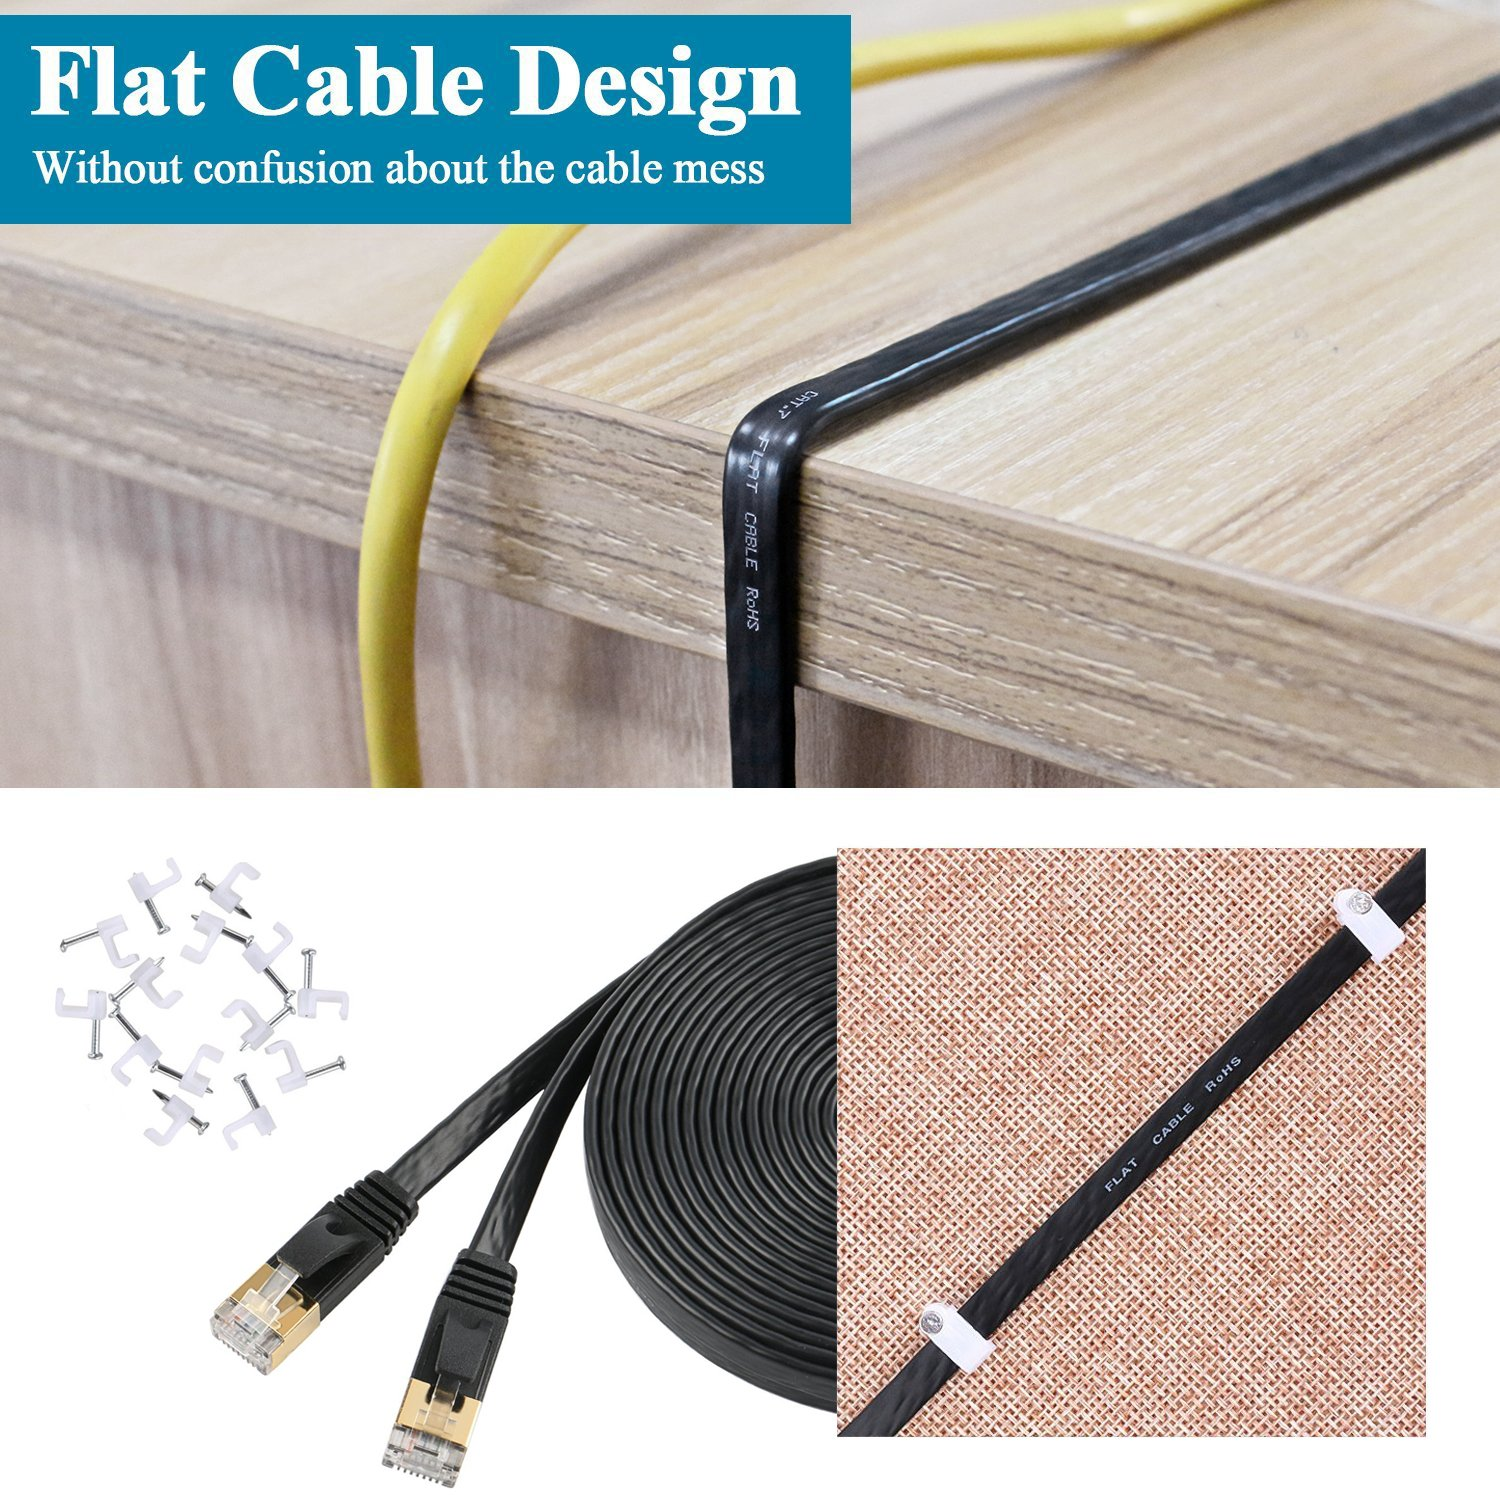 30m Cat 7 Ethernet Cable Fastest Cat7 Flat Patch Cables Rj5 Wiring Diagram 750mhz 10gb Internet For